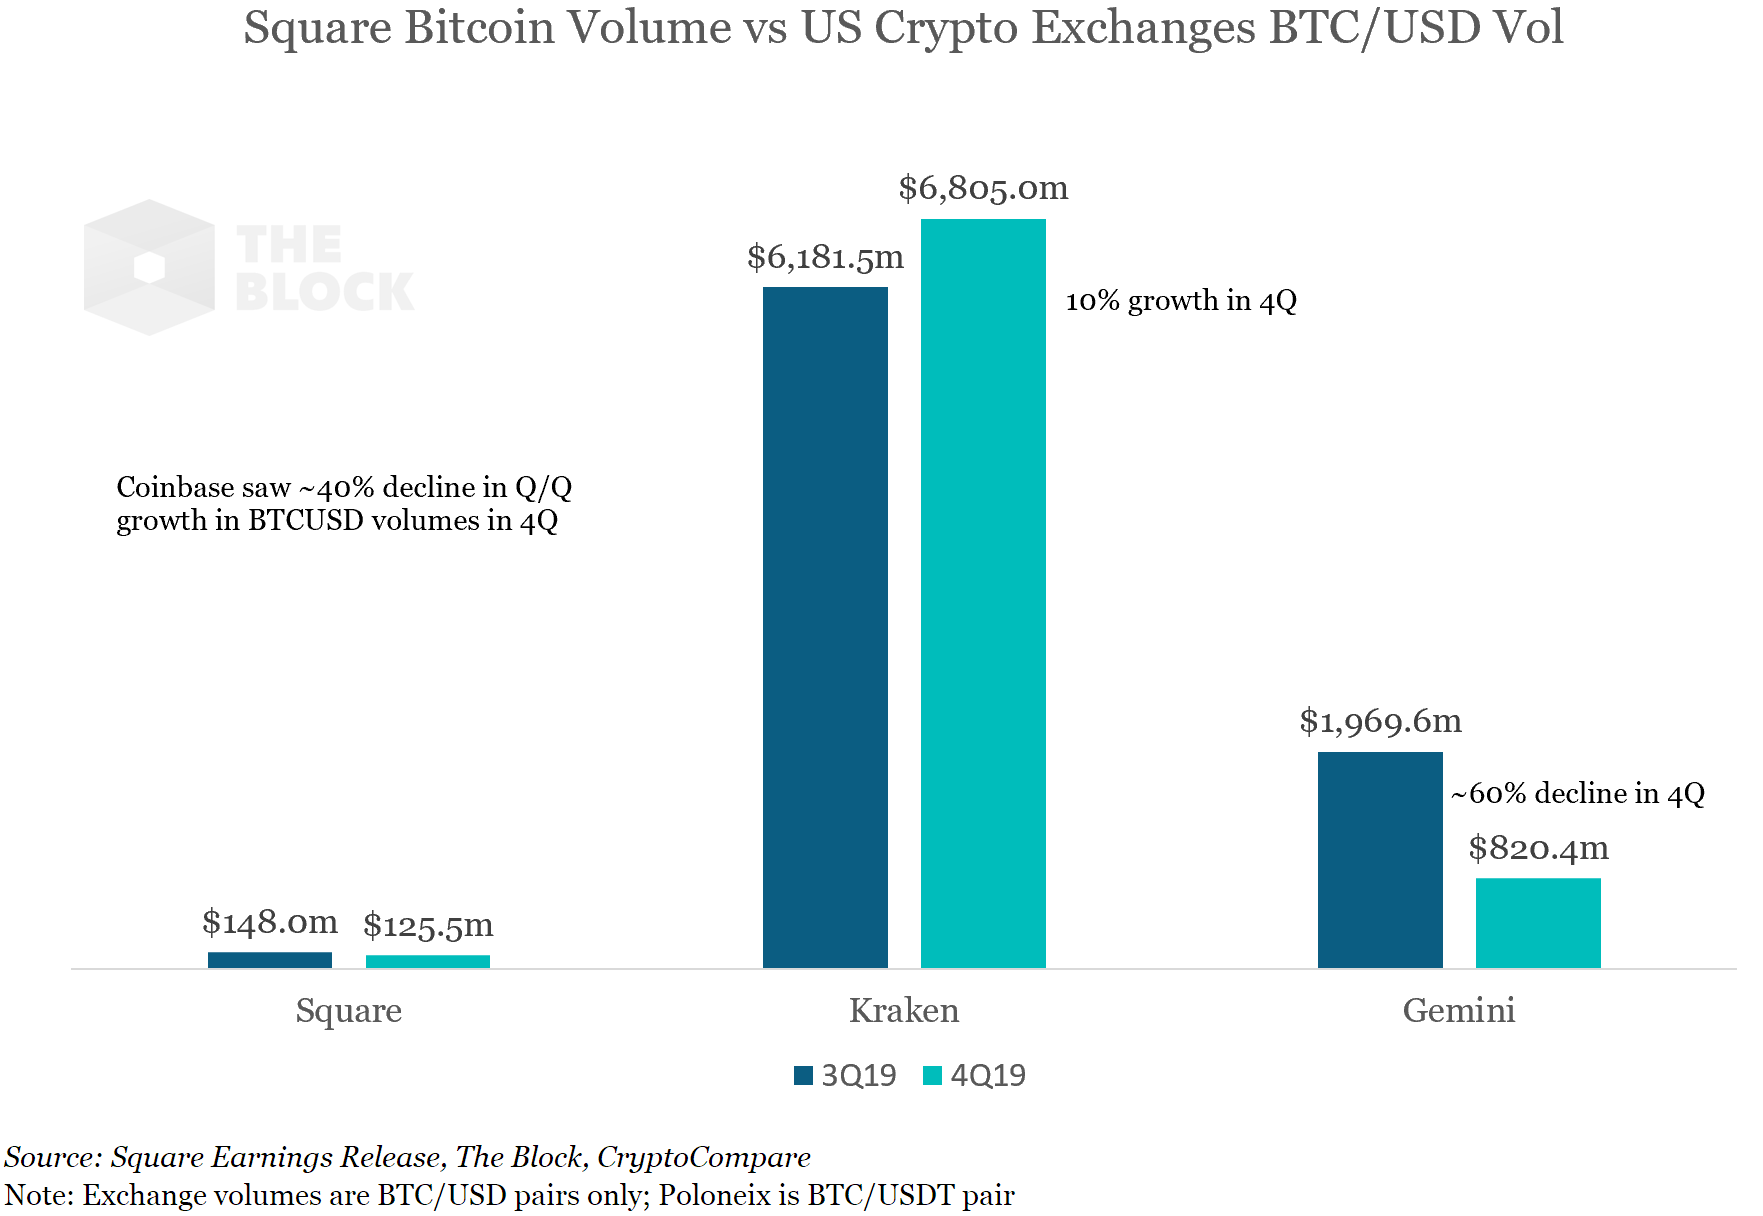 Square sold over half a billion worth of bitcoin in 2019, and outpaced broader crypto exchange volume growth in 4Q